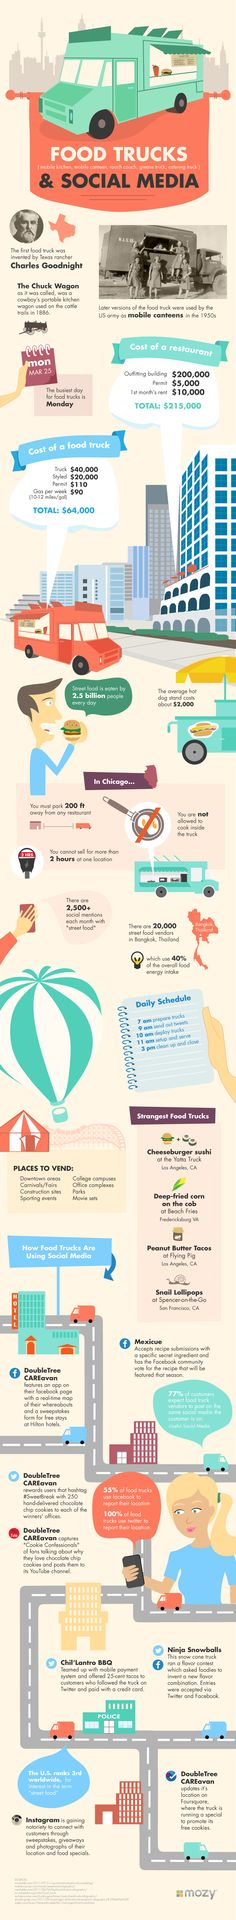 Food infographic Fun facts about food trucks that I NEVER would have known! Infographic Description Fun facts about food trucks that I NEVER would have Food Trucks, Food Truck Catering, Foodtrucks Ideas, Food Truck Business, Business Ideas, Food Truck Design, Food Design, Food Vans, Meals On Wheels